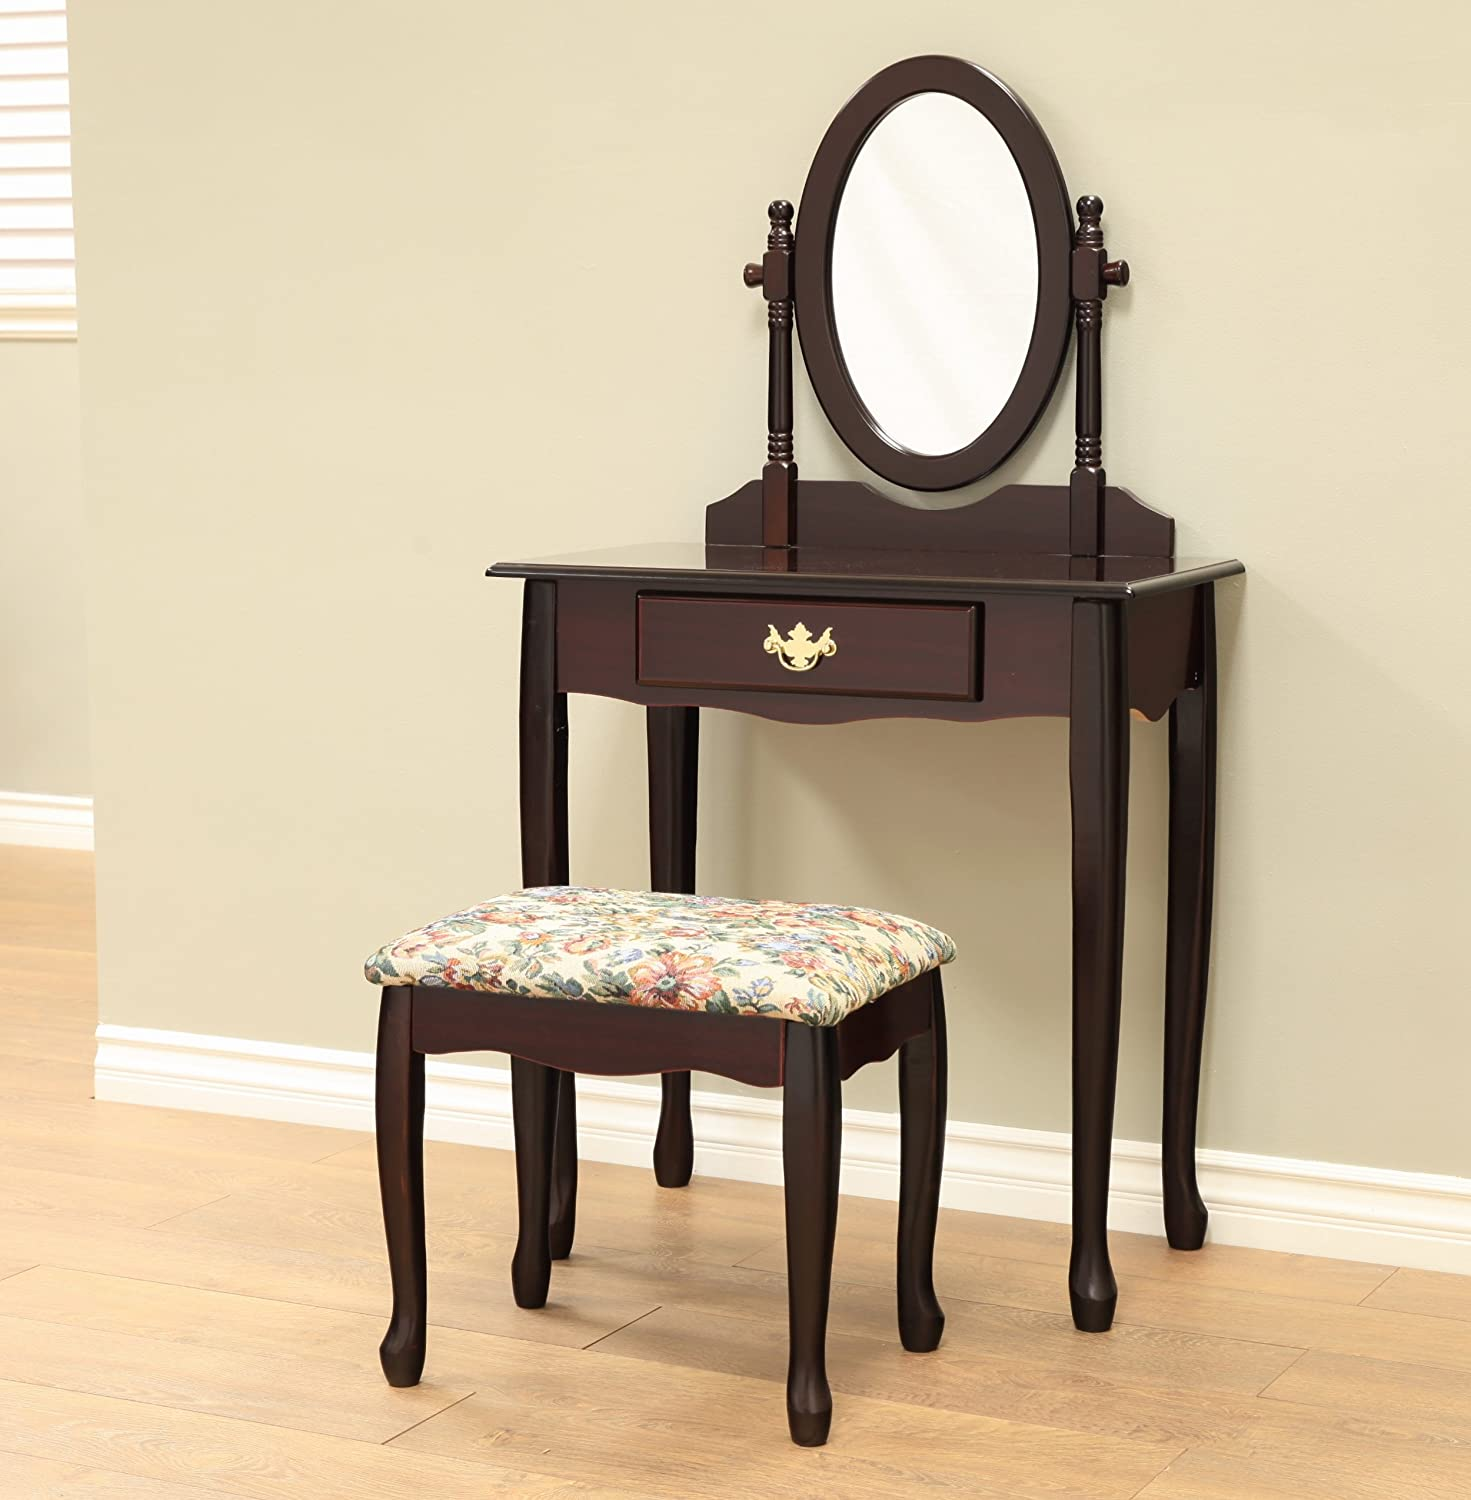 Frenchi Home Furnishing 3-Piece Vanity Set, Espresso Finish Megaware Inc. H-7 CO-3411